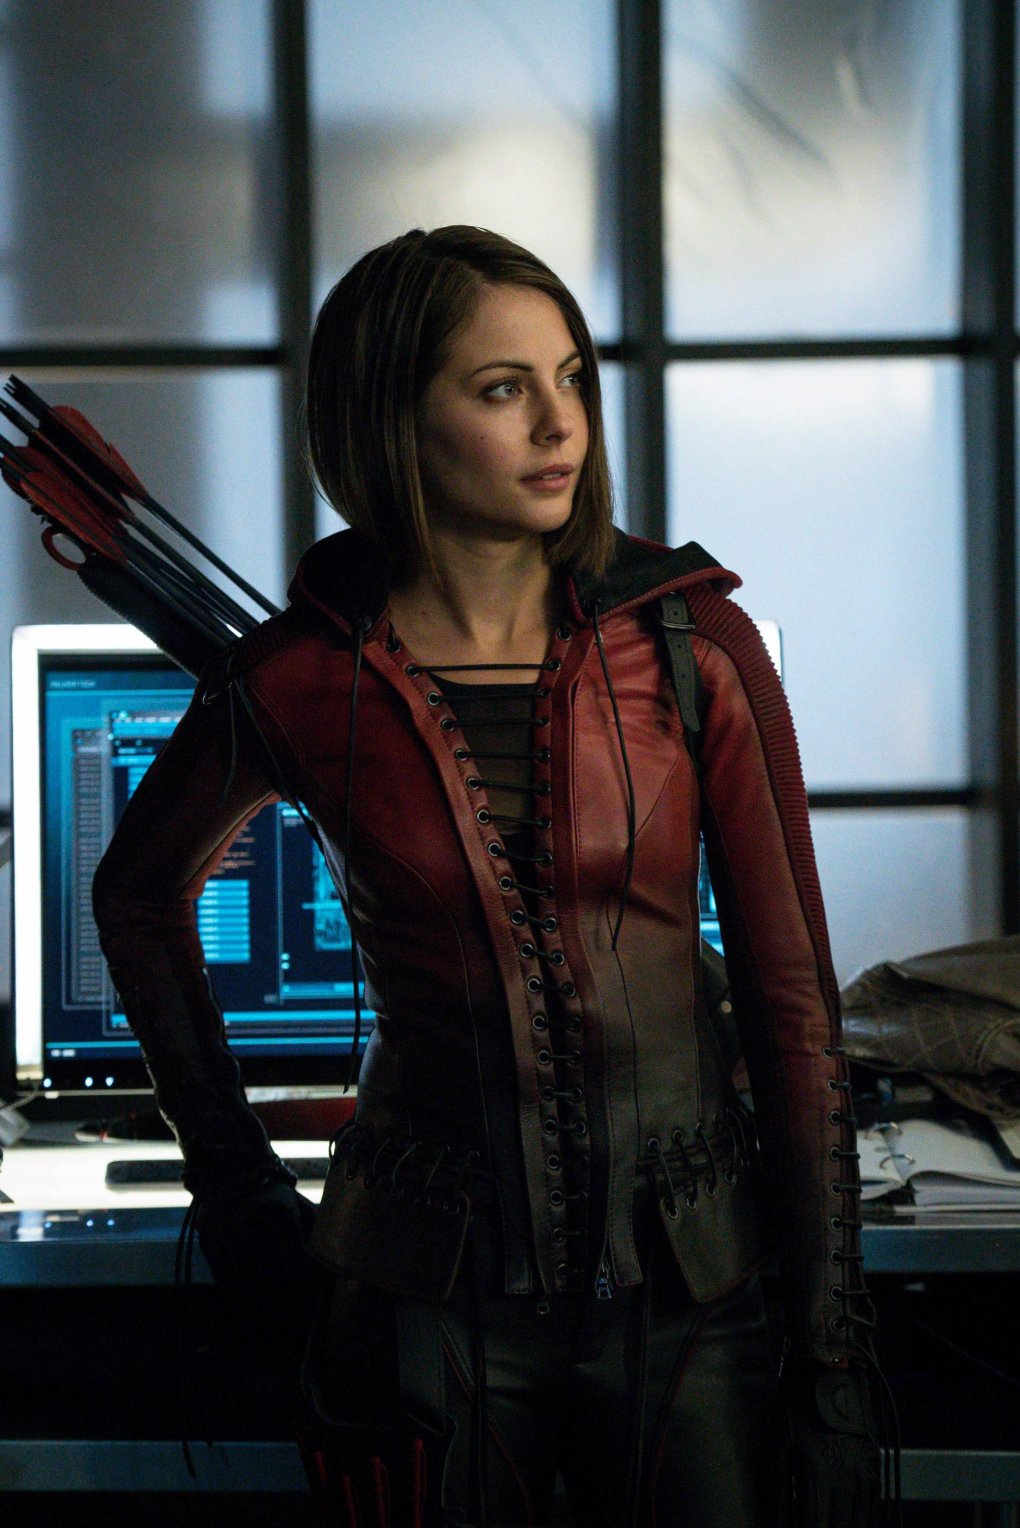 willa holland speedy